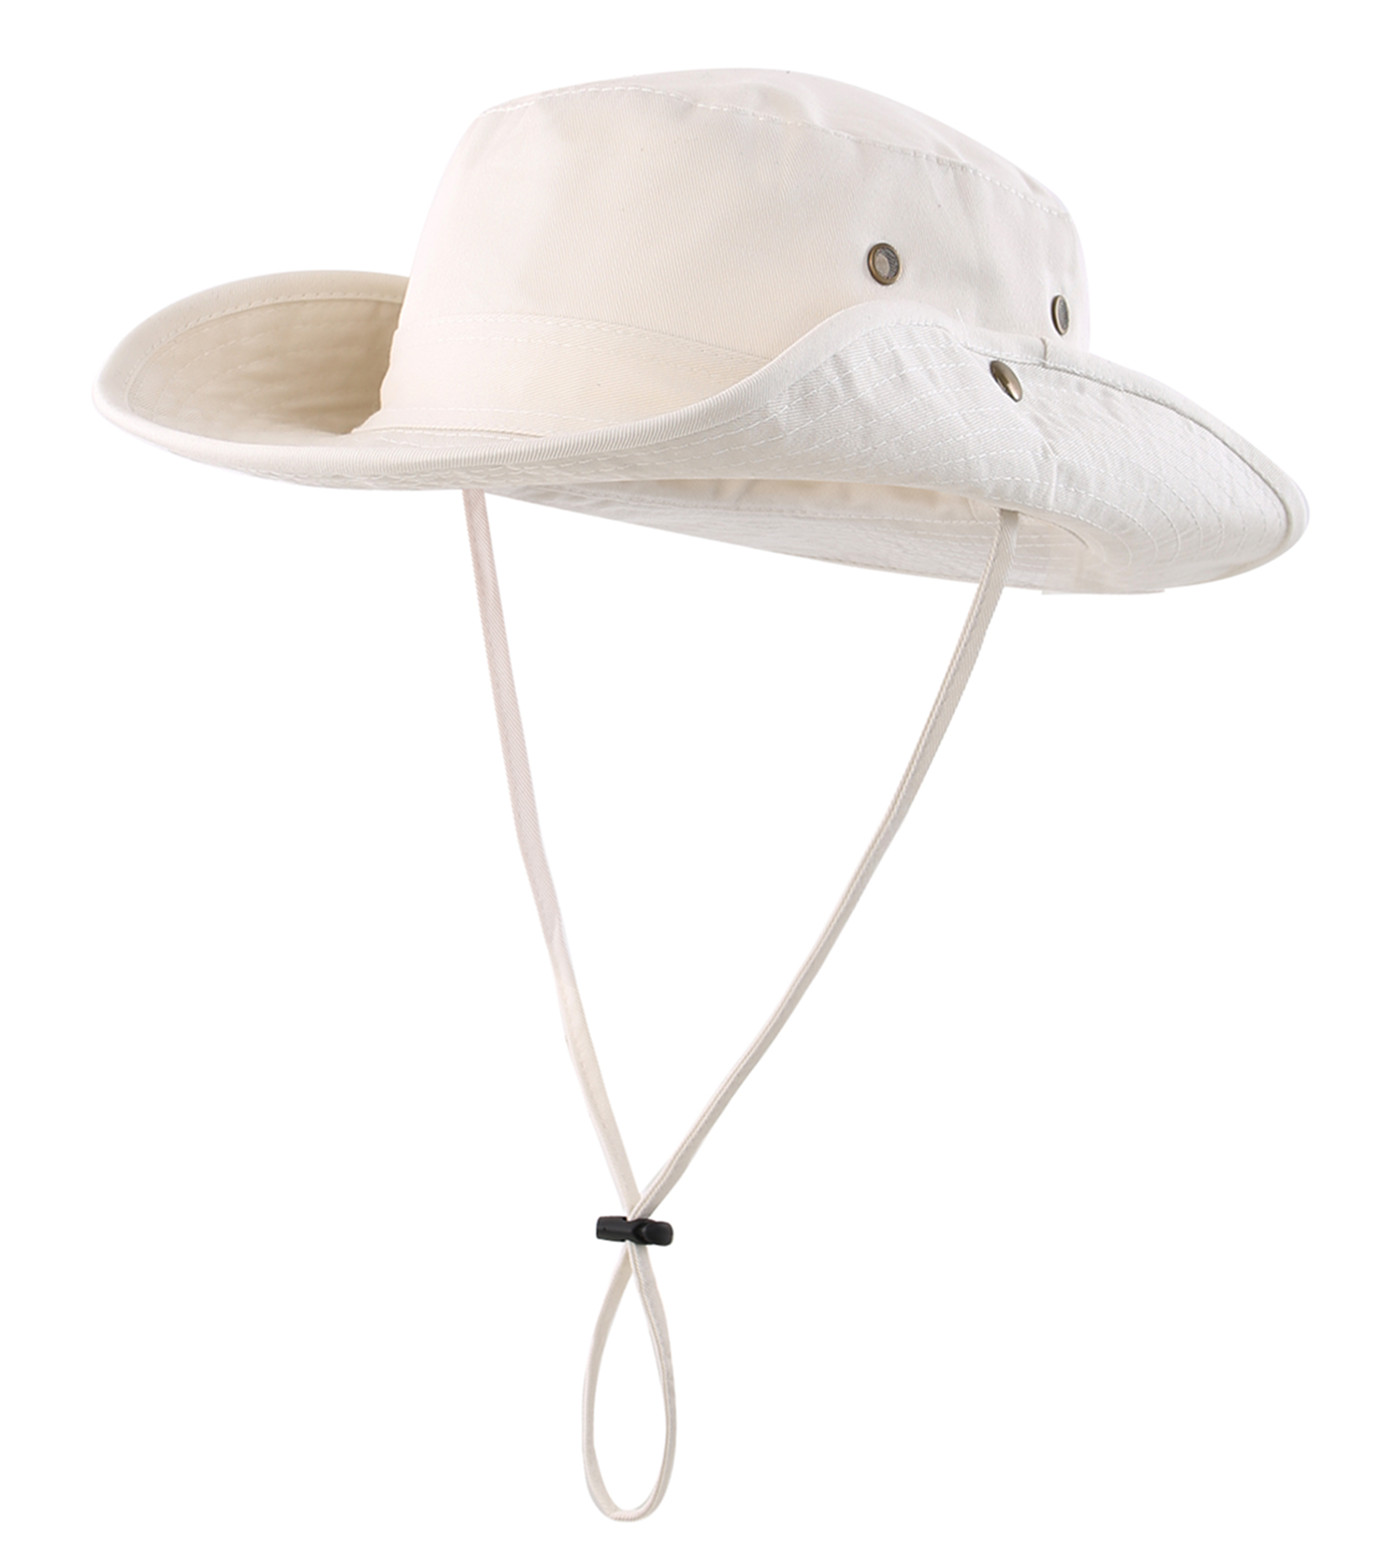 Connectyle Men's Women Boonie Sun Hat Wide Brim Breathable Cotton Safari Hat With Strap